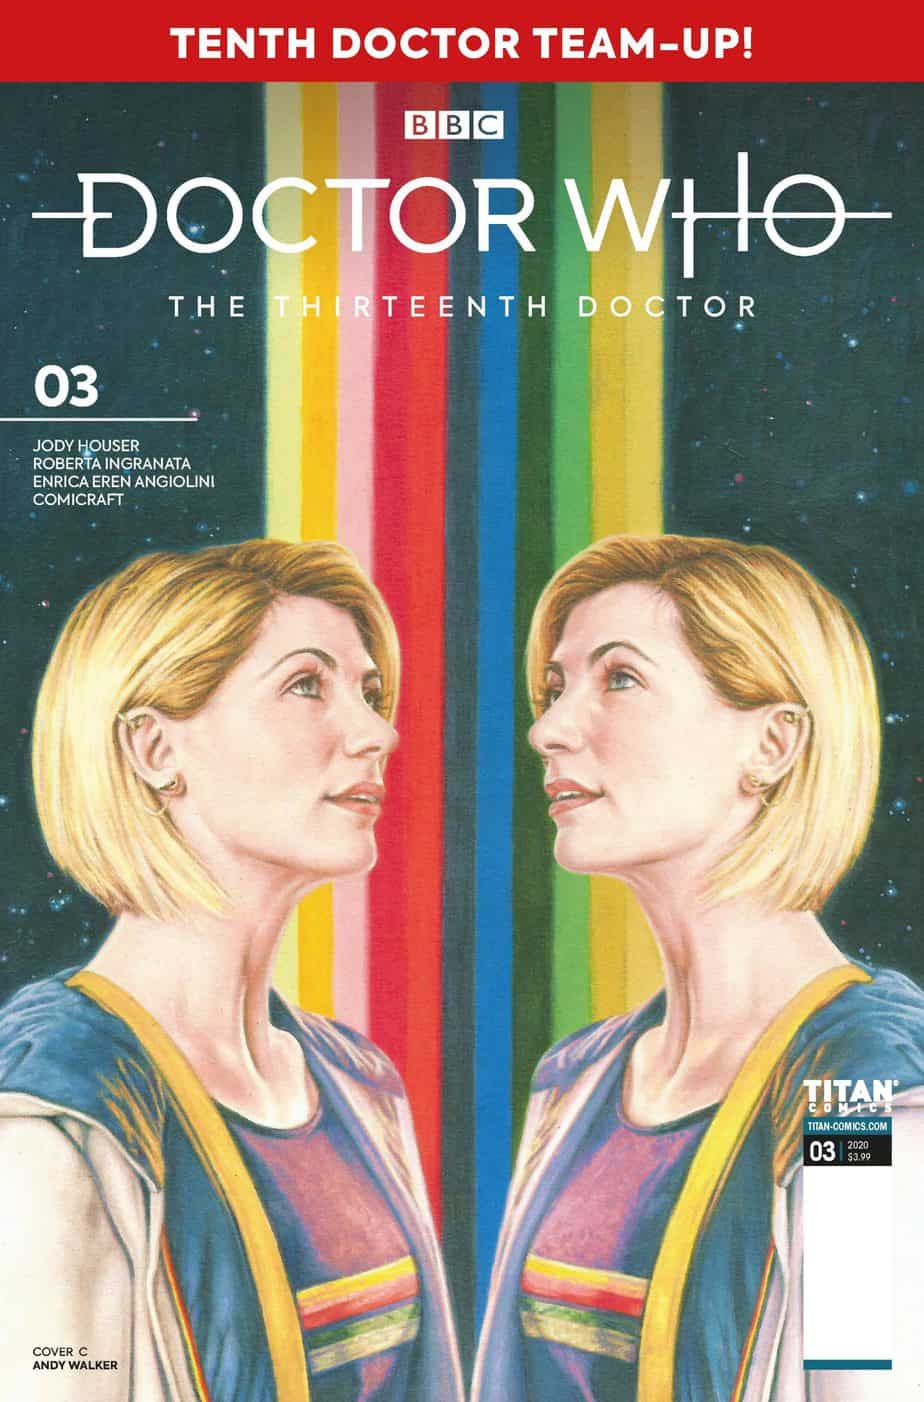 Doctor Who The Thirteenth Doctor Season Two #3 - Cover C